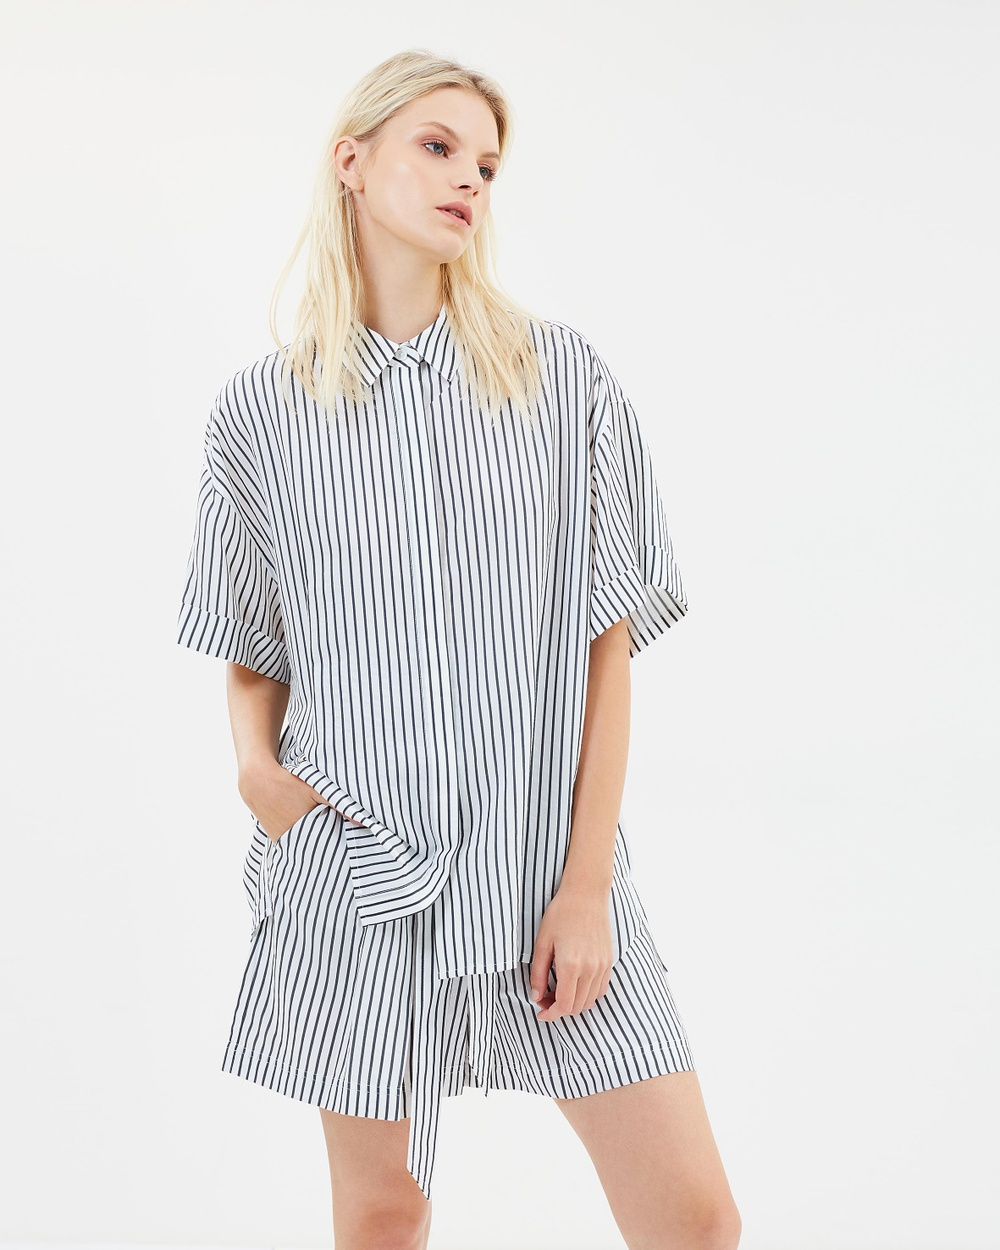 GREY Jason Wu Striped Short Sleeve Button Blouse Tops Star White & Elephant Striped Short Sleeve Button Blouse